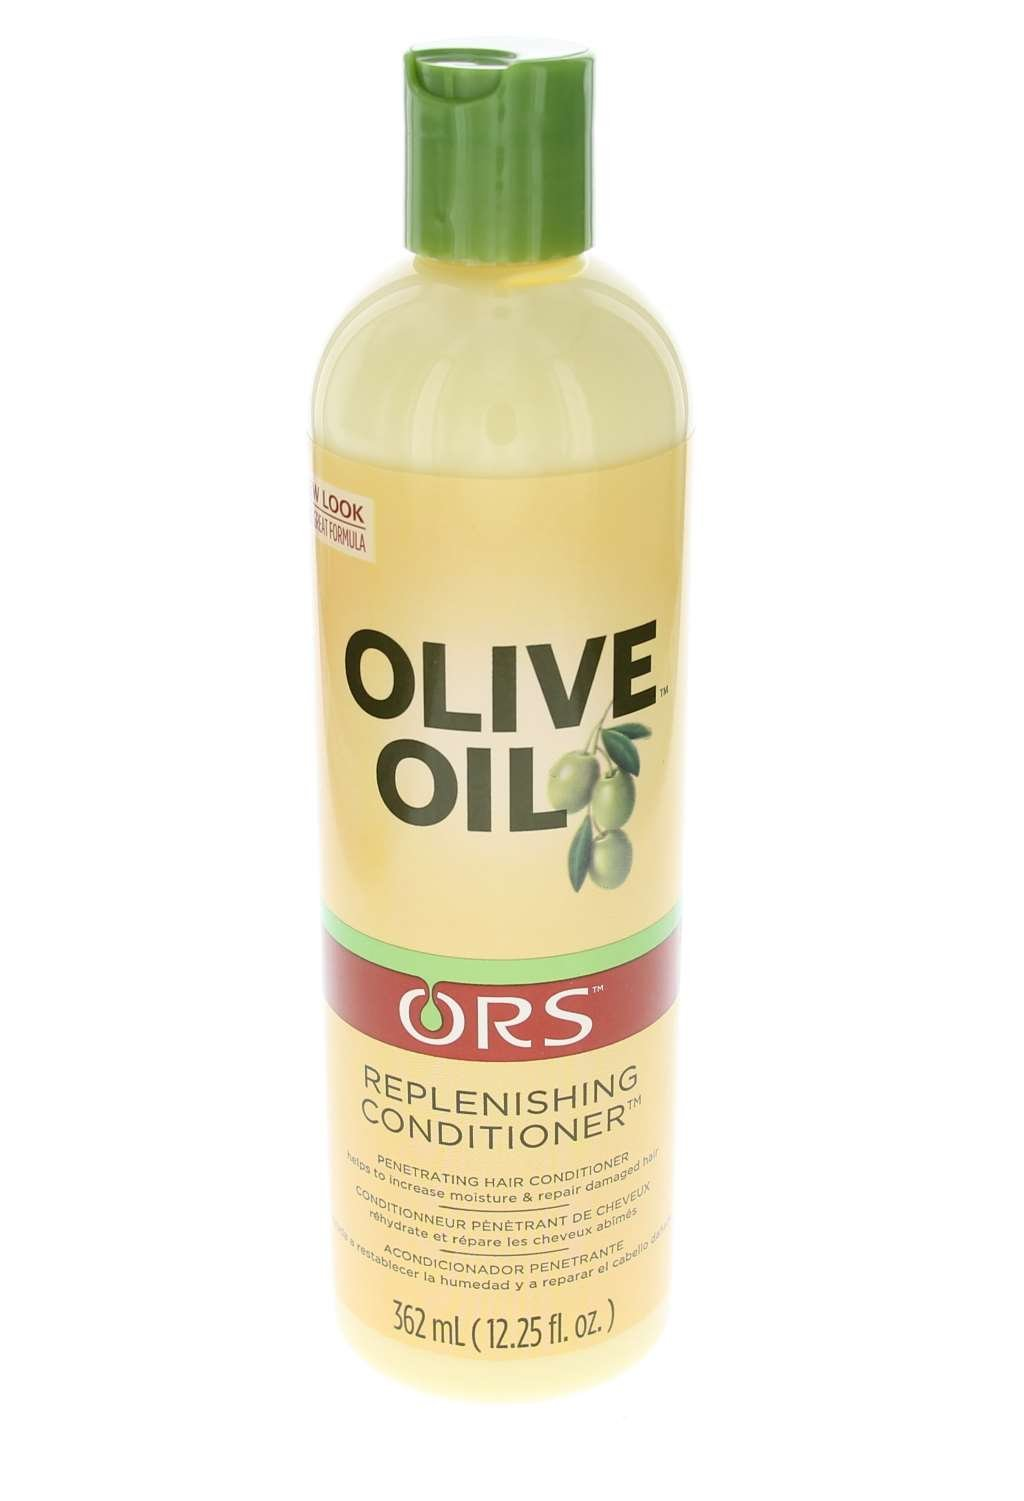 Ors Olive Oil Conditioner Replenishing 12.25 Ounce (362ml) (2 Pack)